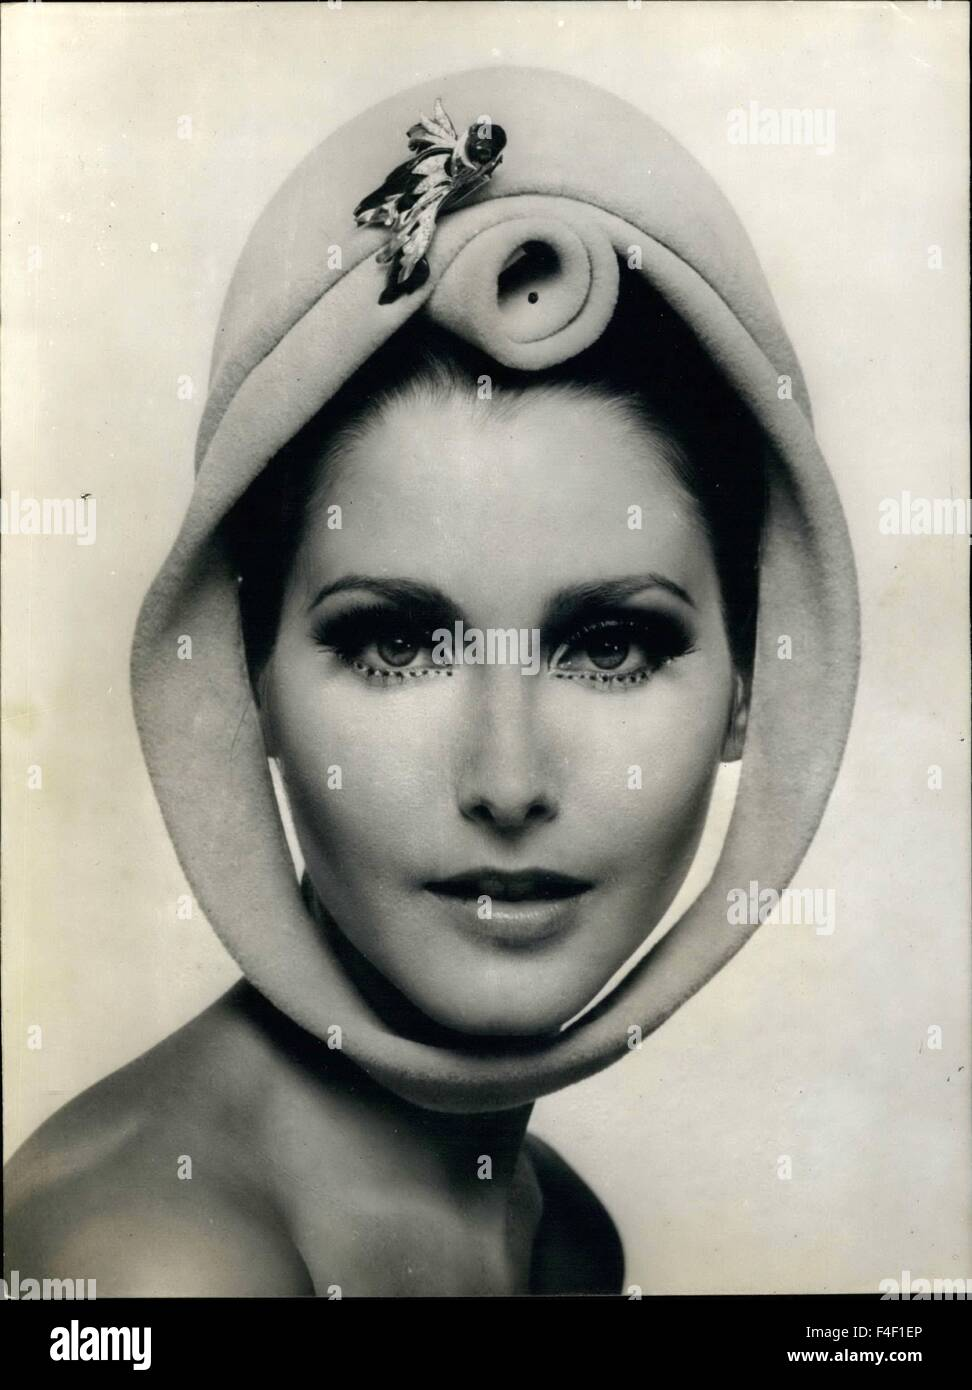 1966 - Hats Fashion Fall and Winter 1966-1967. OPS: Original hat of Marie-Christiane, with a twirled felt rose over - Stock Image